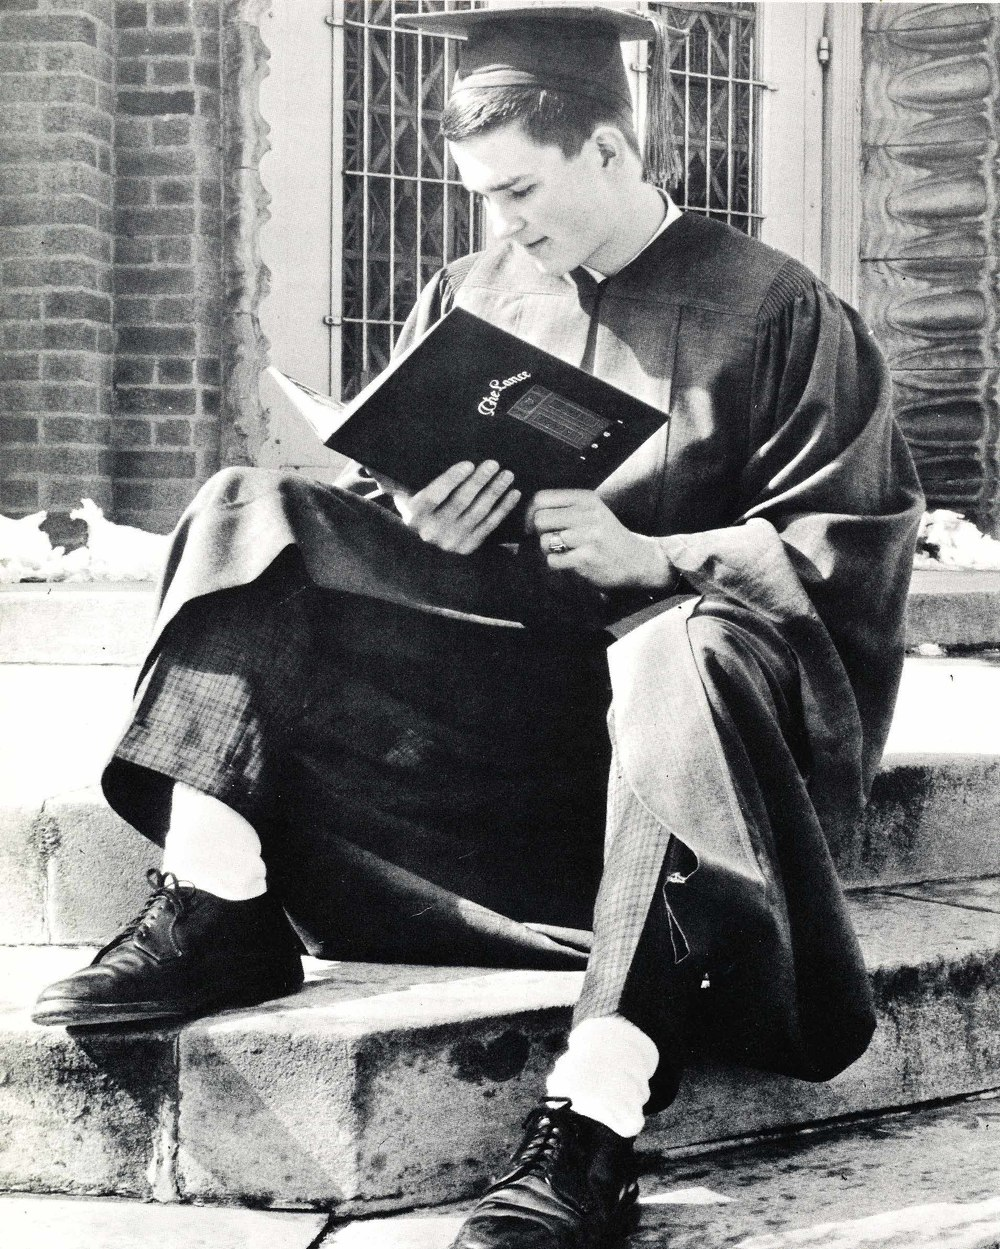 A student reads The Lance in 1961.